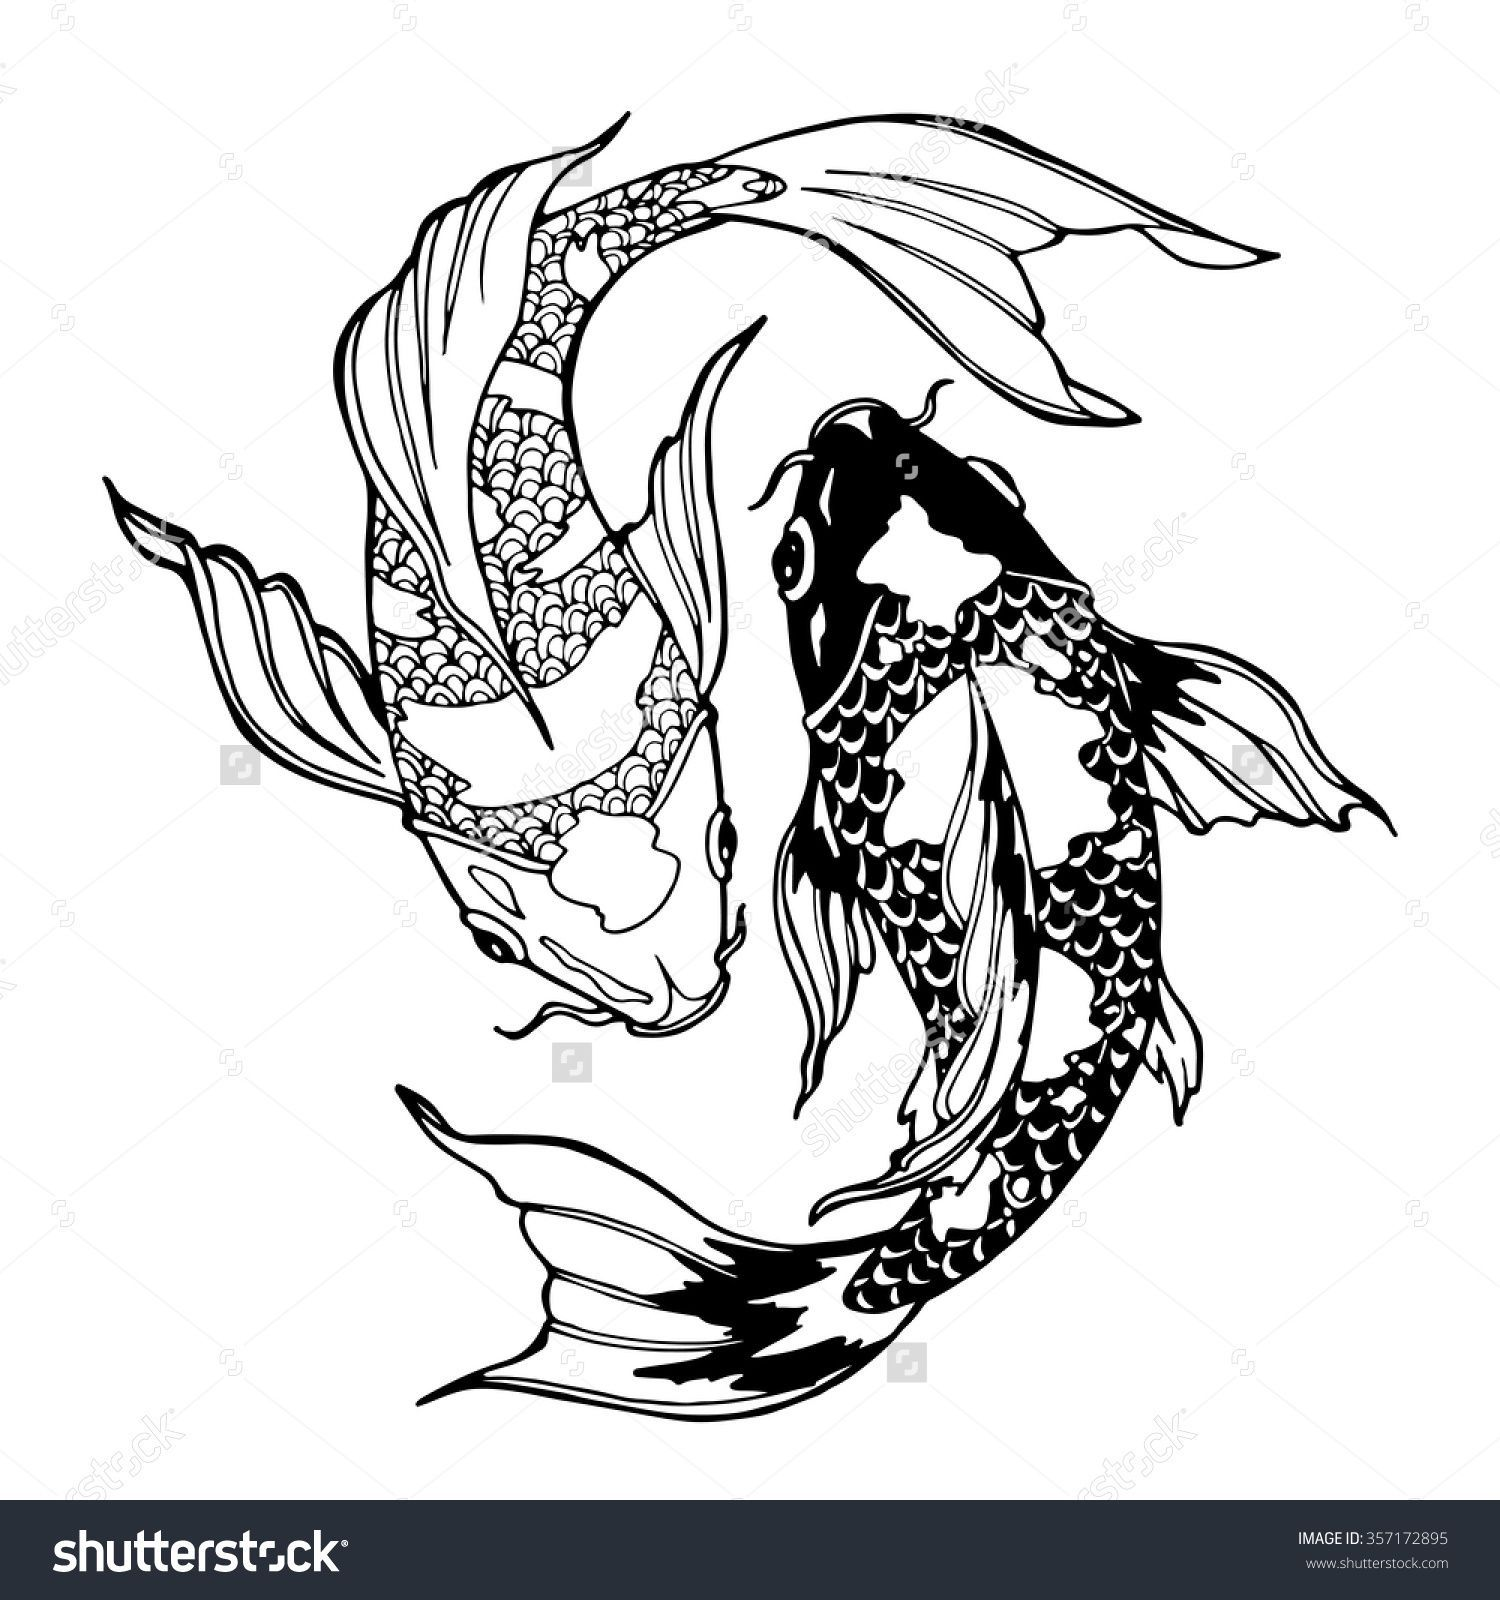 Illustration Koi Carp Coloring Page Yin Stock Vector Royalty Free 357172895 In 2020 Koi Fish Drawing Koi Art Fish Coloring Page